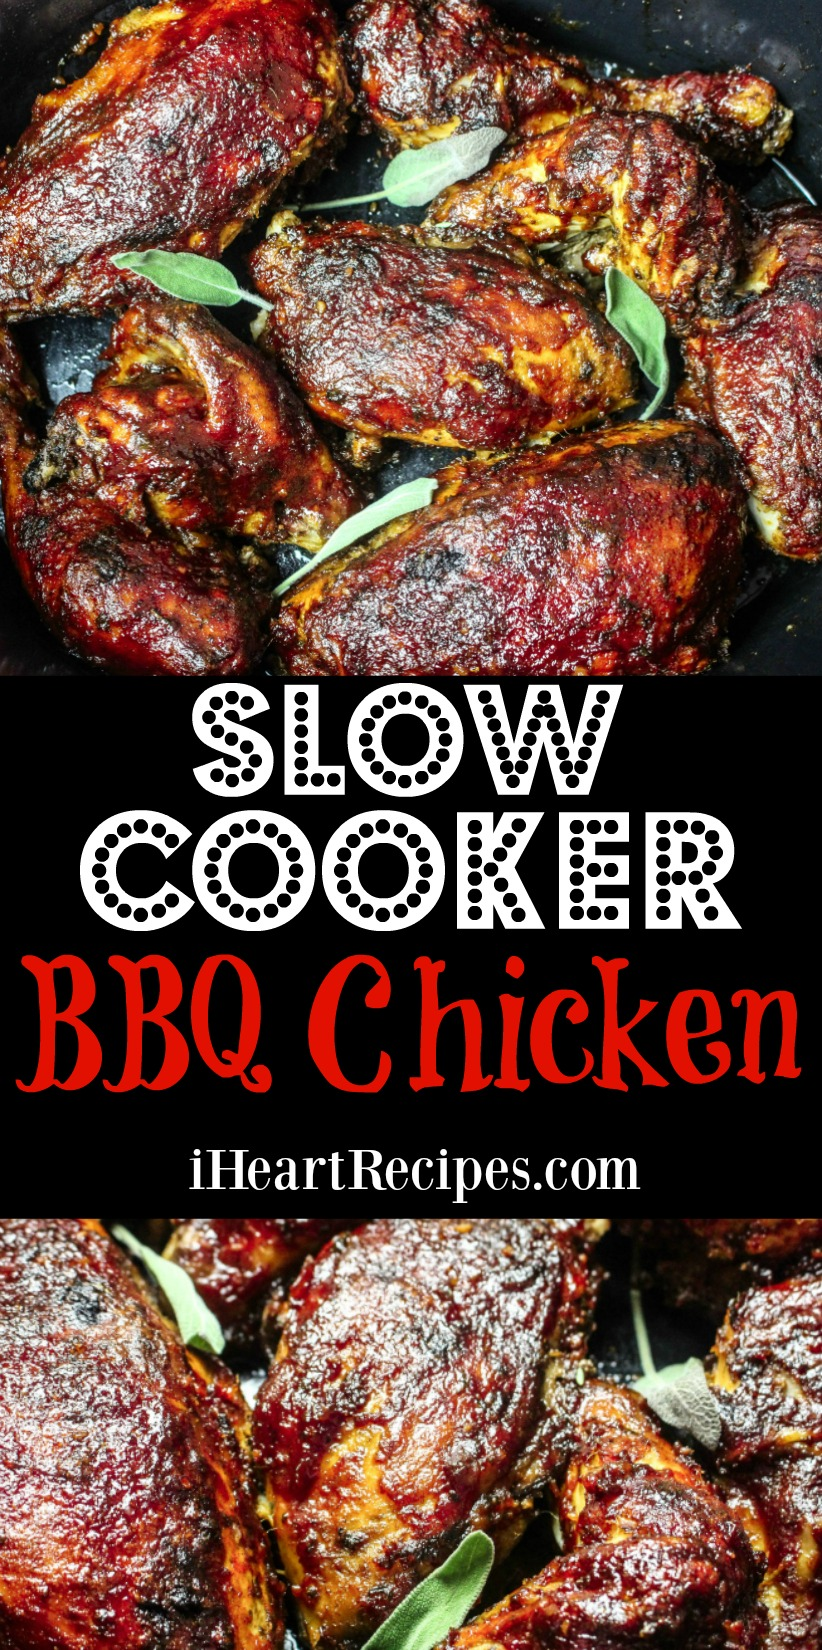 Delicious Slow Cooker BBQ Chicken | I Heart Recipes